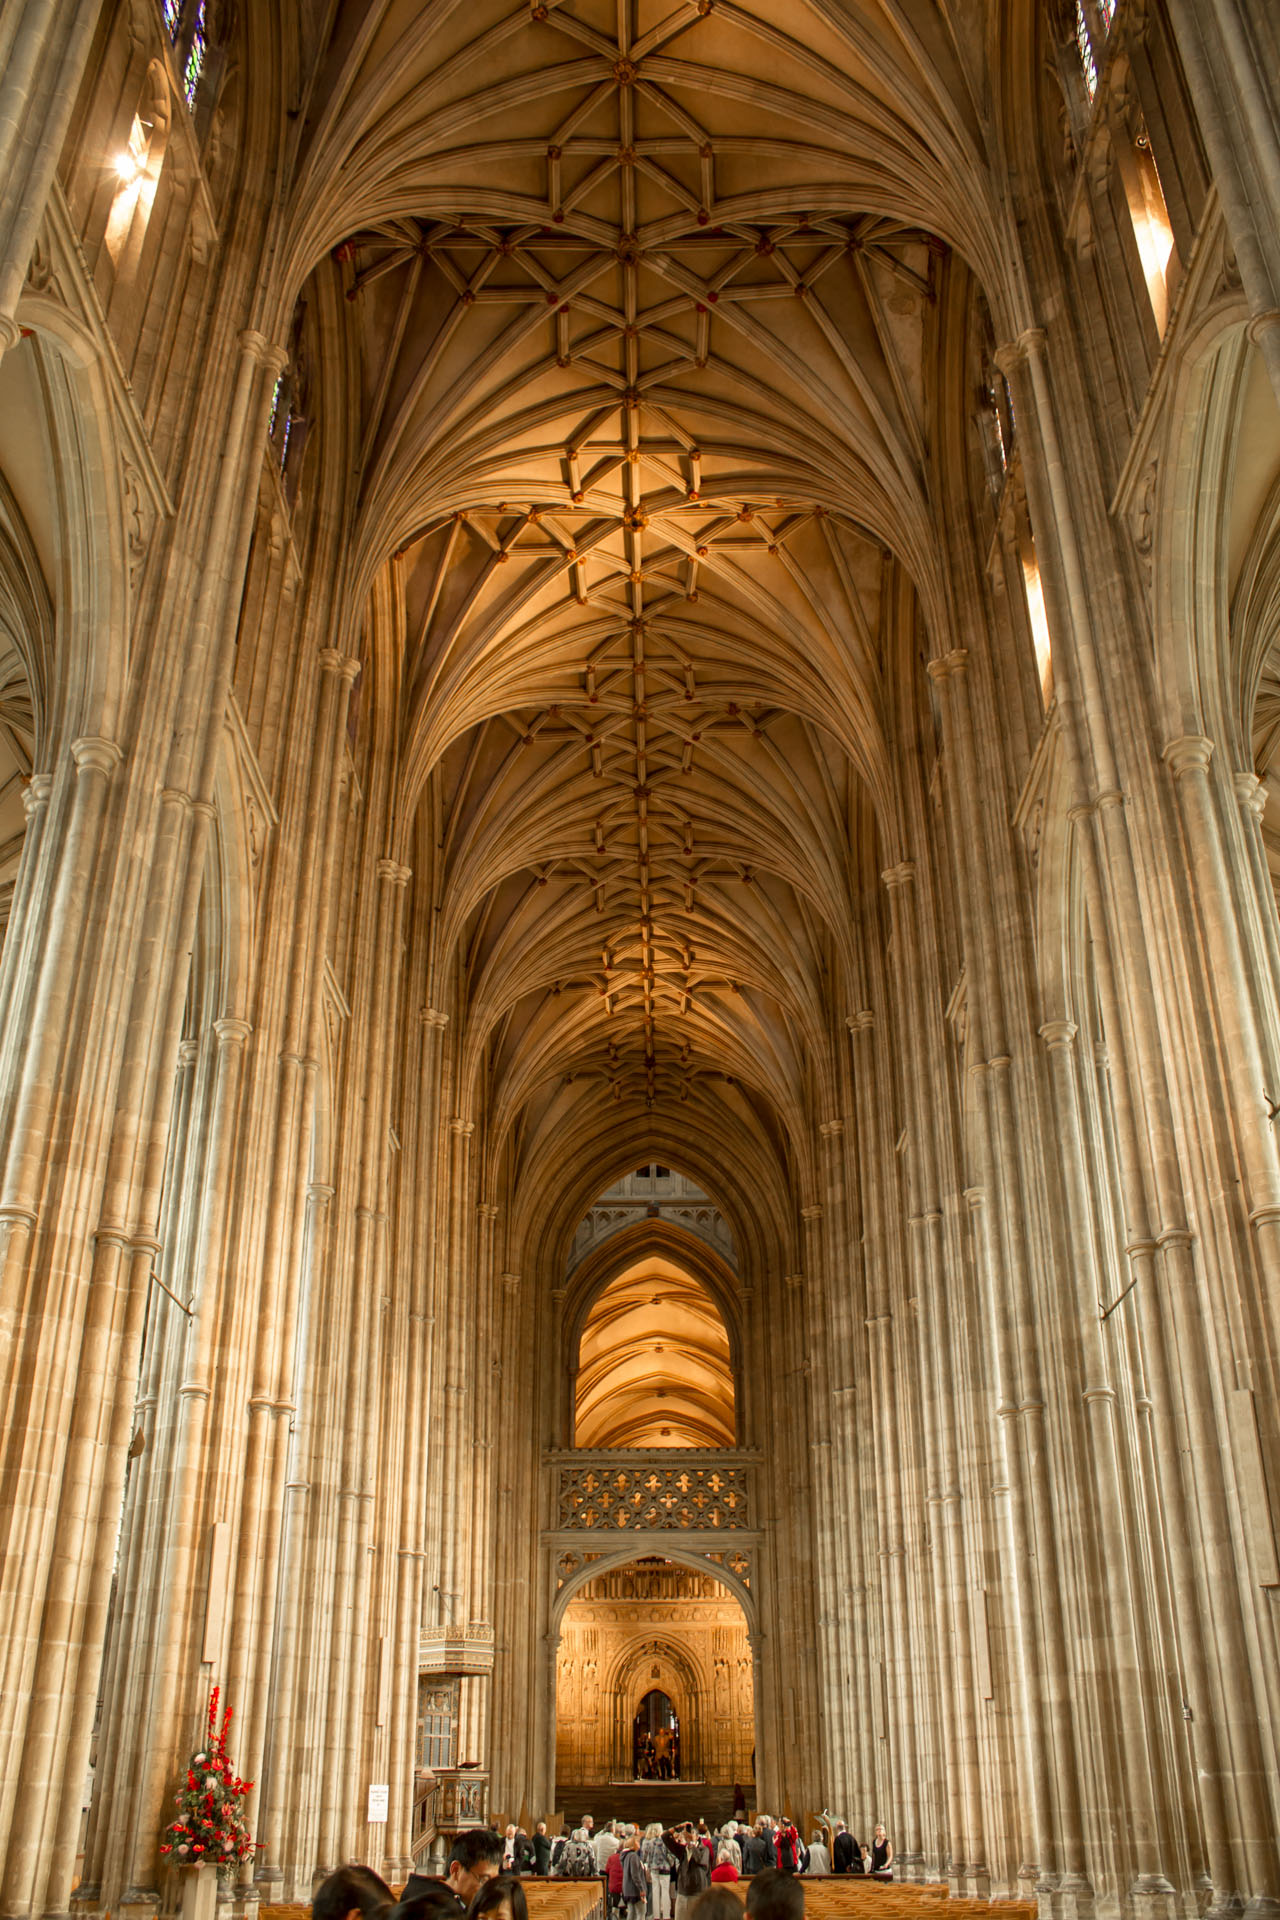 http://photorasa.com/canterbury-cathedral/elaborate-lierne-rib-vaulted-ceiling-above-the-nave/